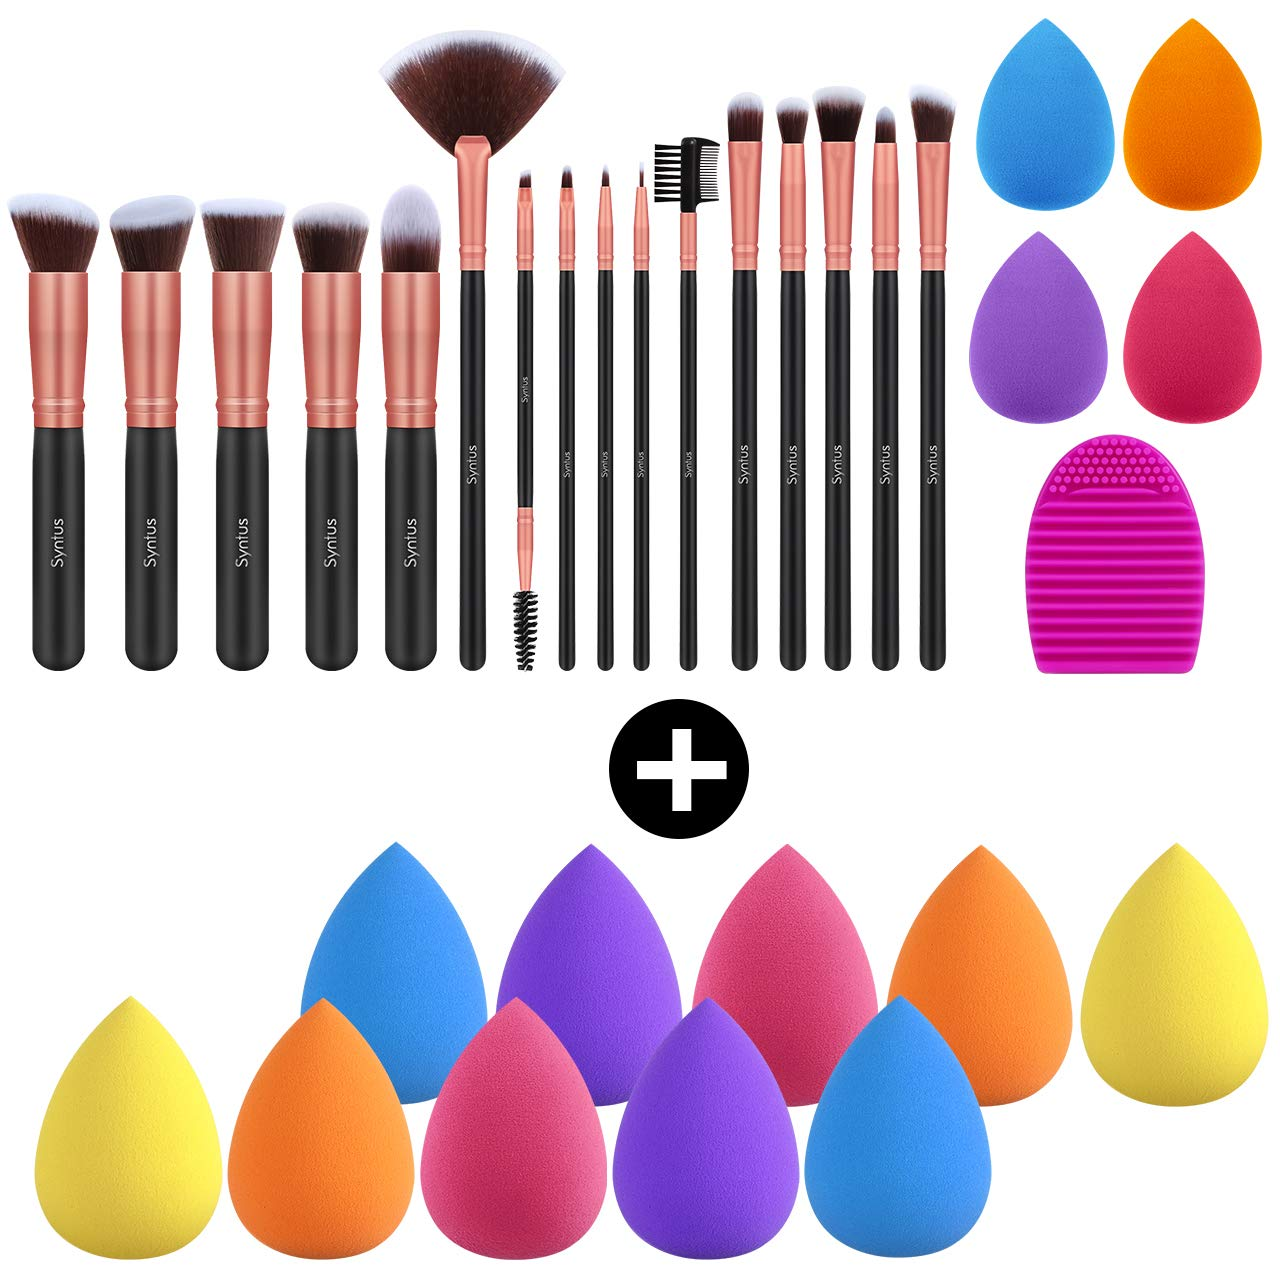 Syntus 16 Pcs Makeup Brush Set & 10 Pcs Makeup Sponge Set